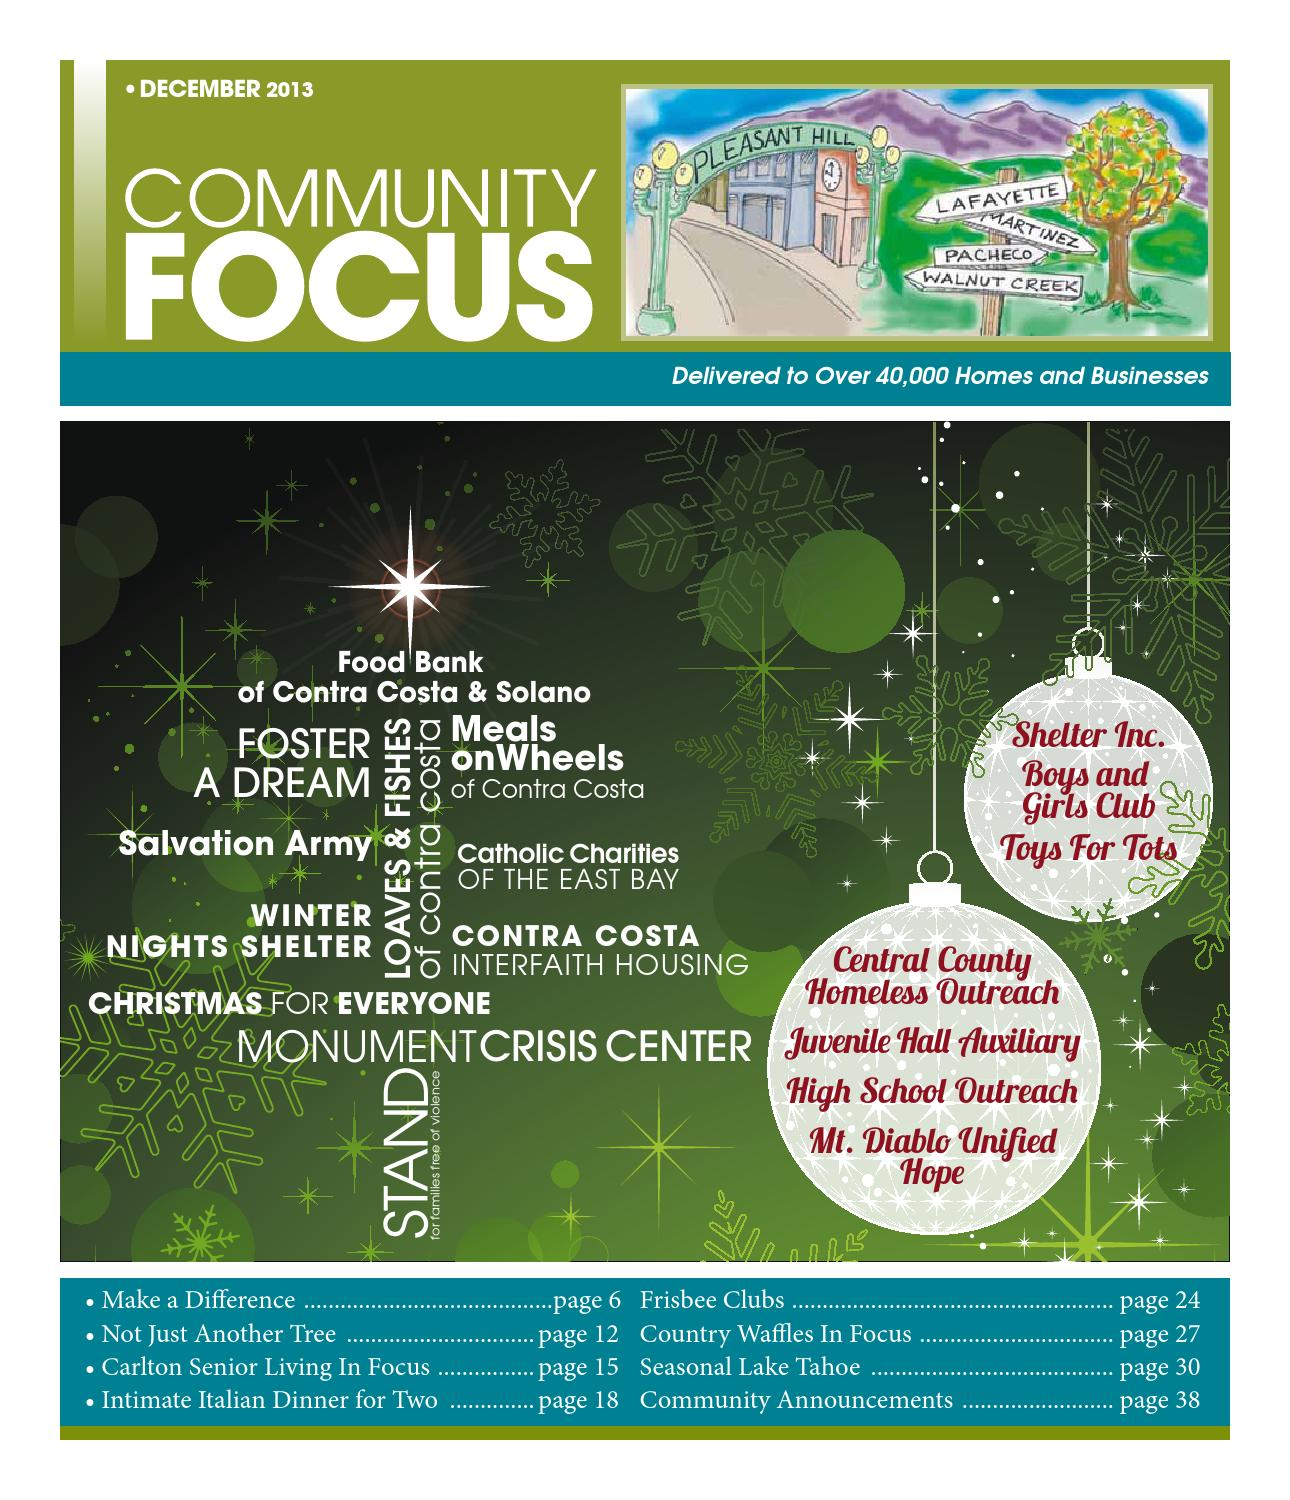 dec 13focusfinallores by community focus issuu rh issuu com